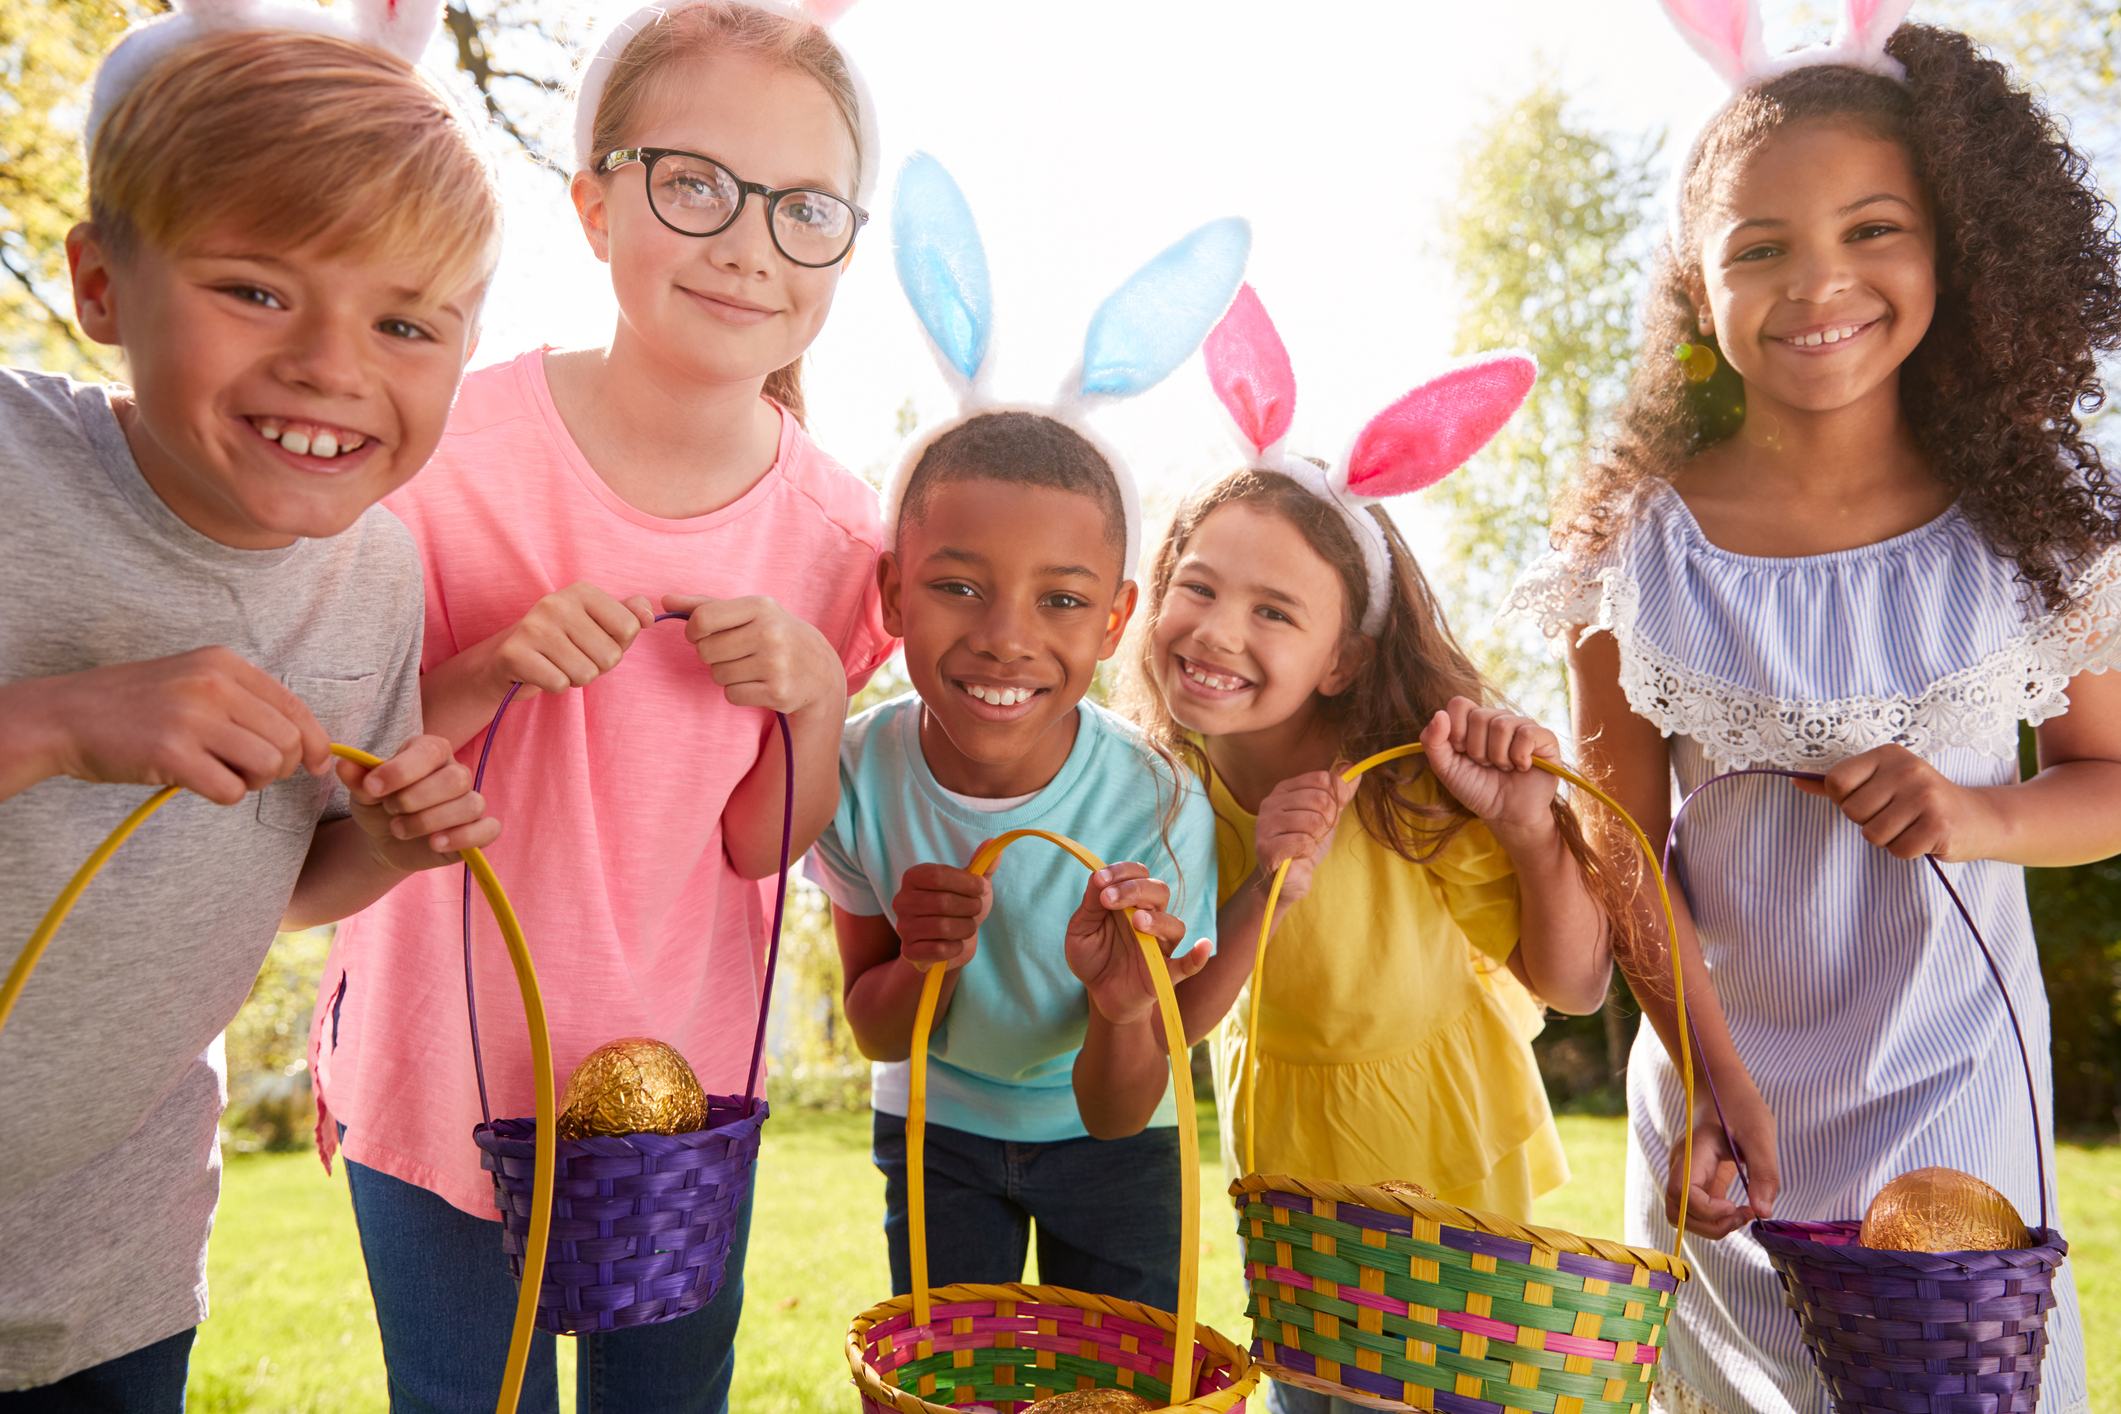 Plan Your Easter 2021 Celebrations in San Antonio at Dominion Ridge